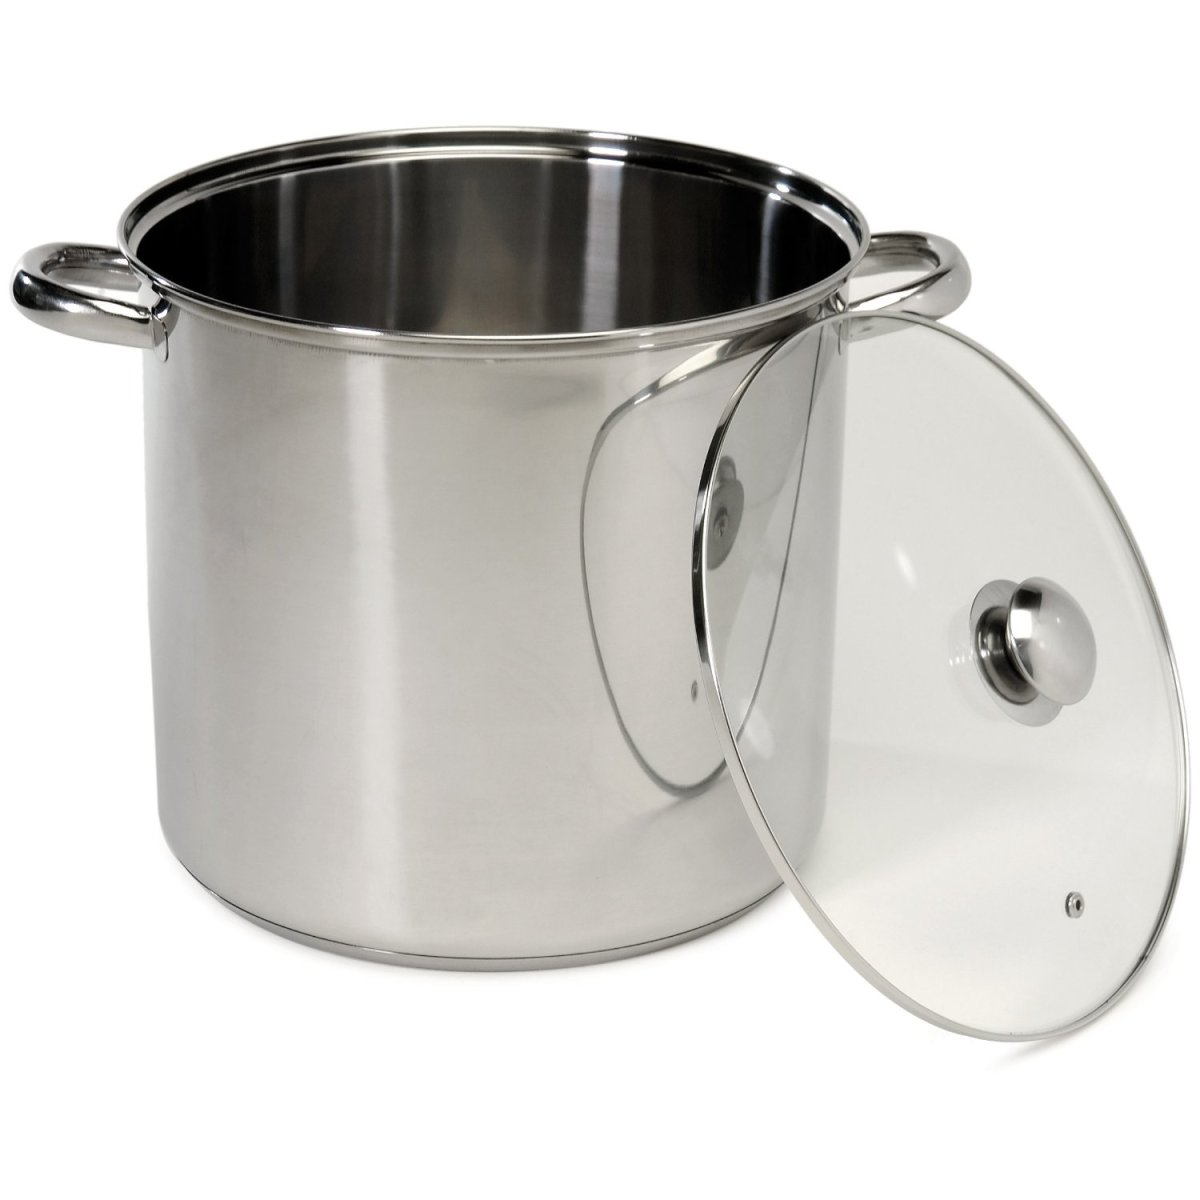 Boil water, in a cooking pot (7 litres), that is sufficient to submerge all your peeled plantain. Image Credit: Amazon.com